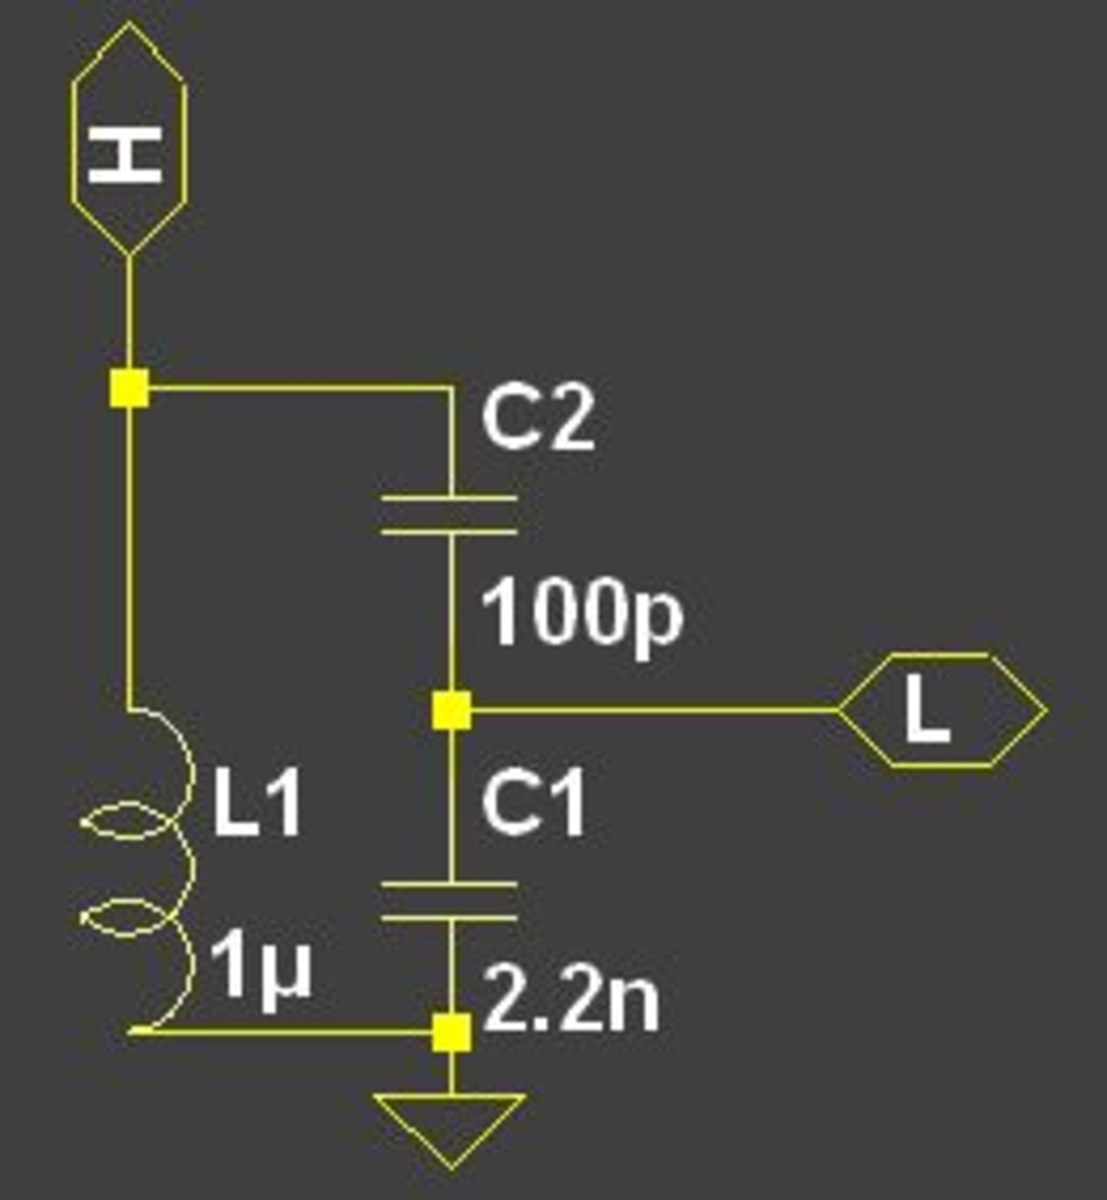 An LC resonant circuit with a capacitor divider.  The point L can be connected to a low impedance load such as a transistor base.